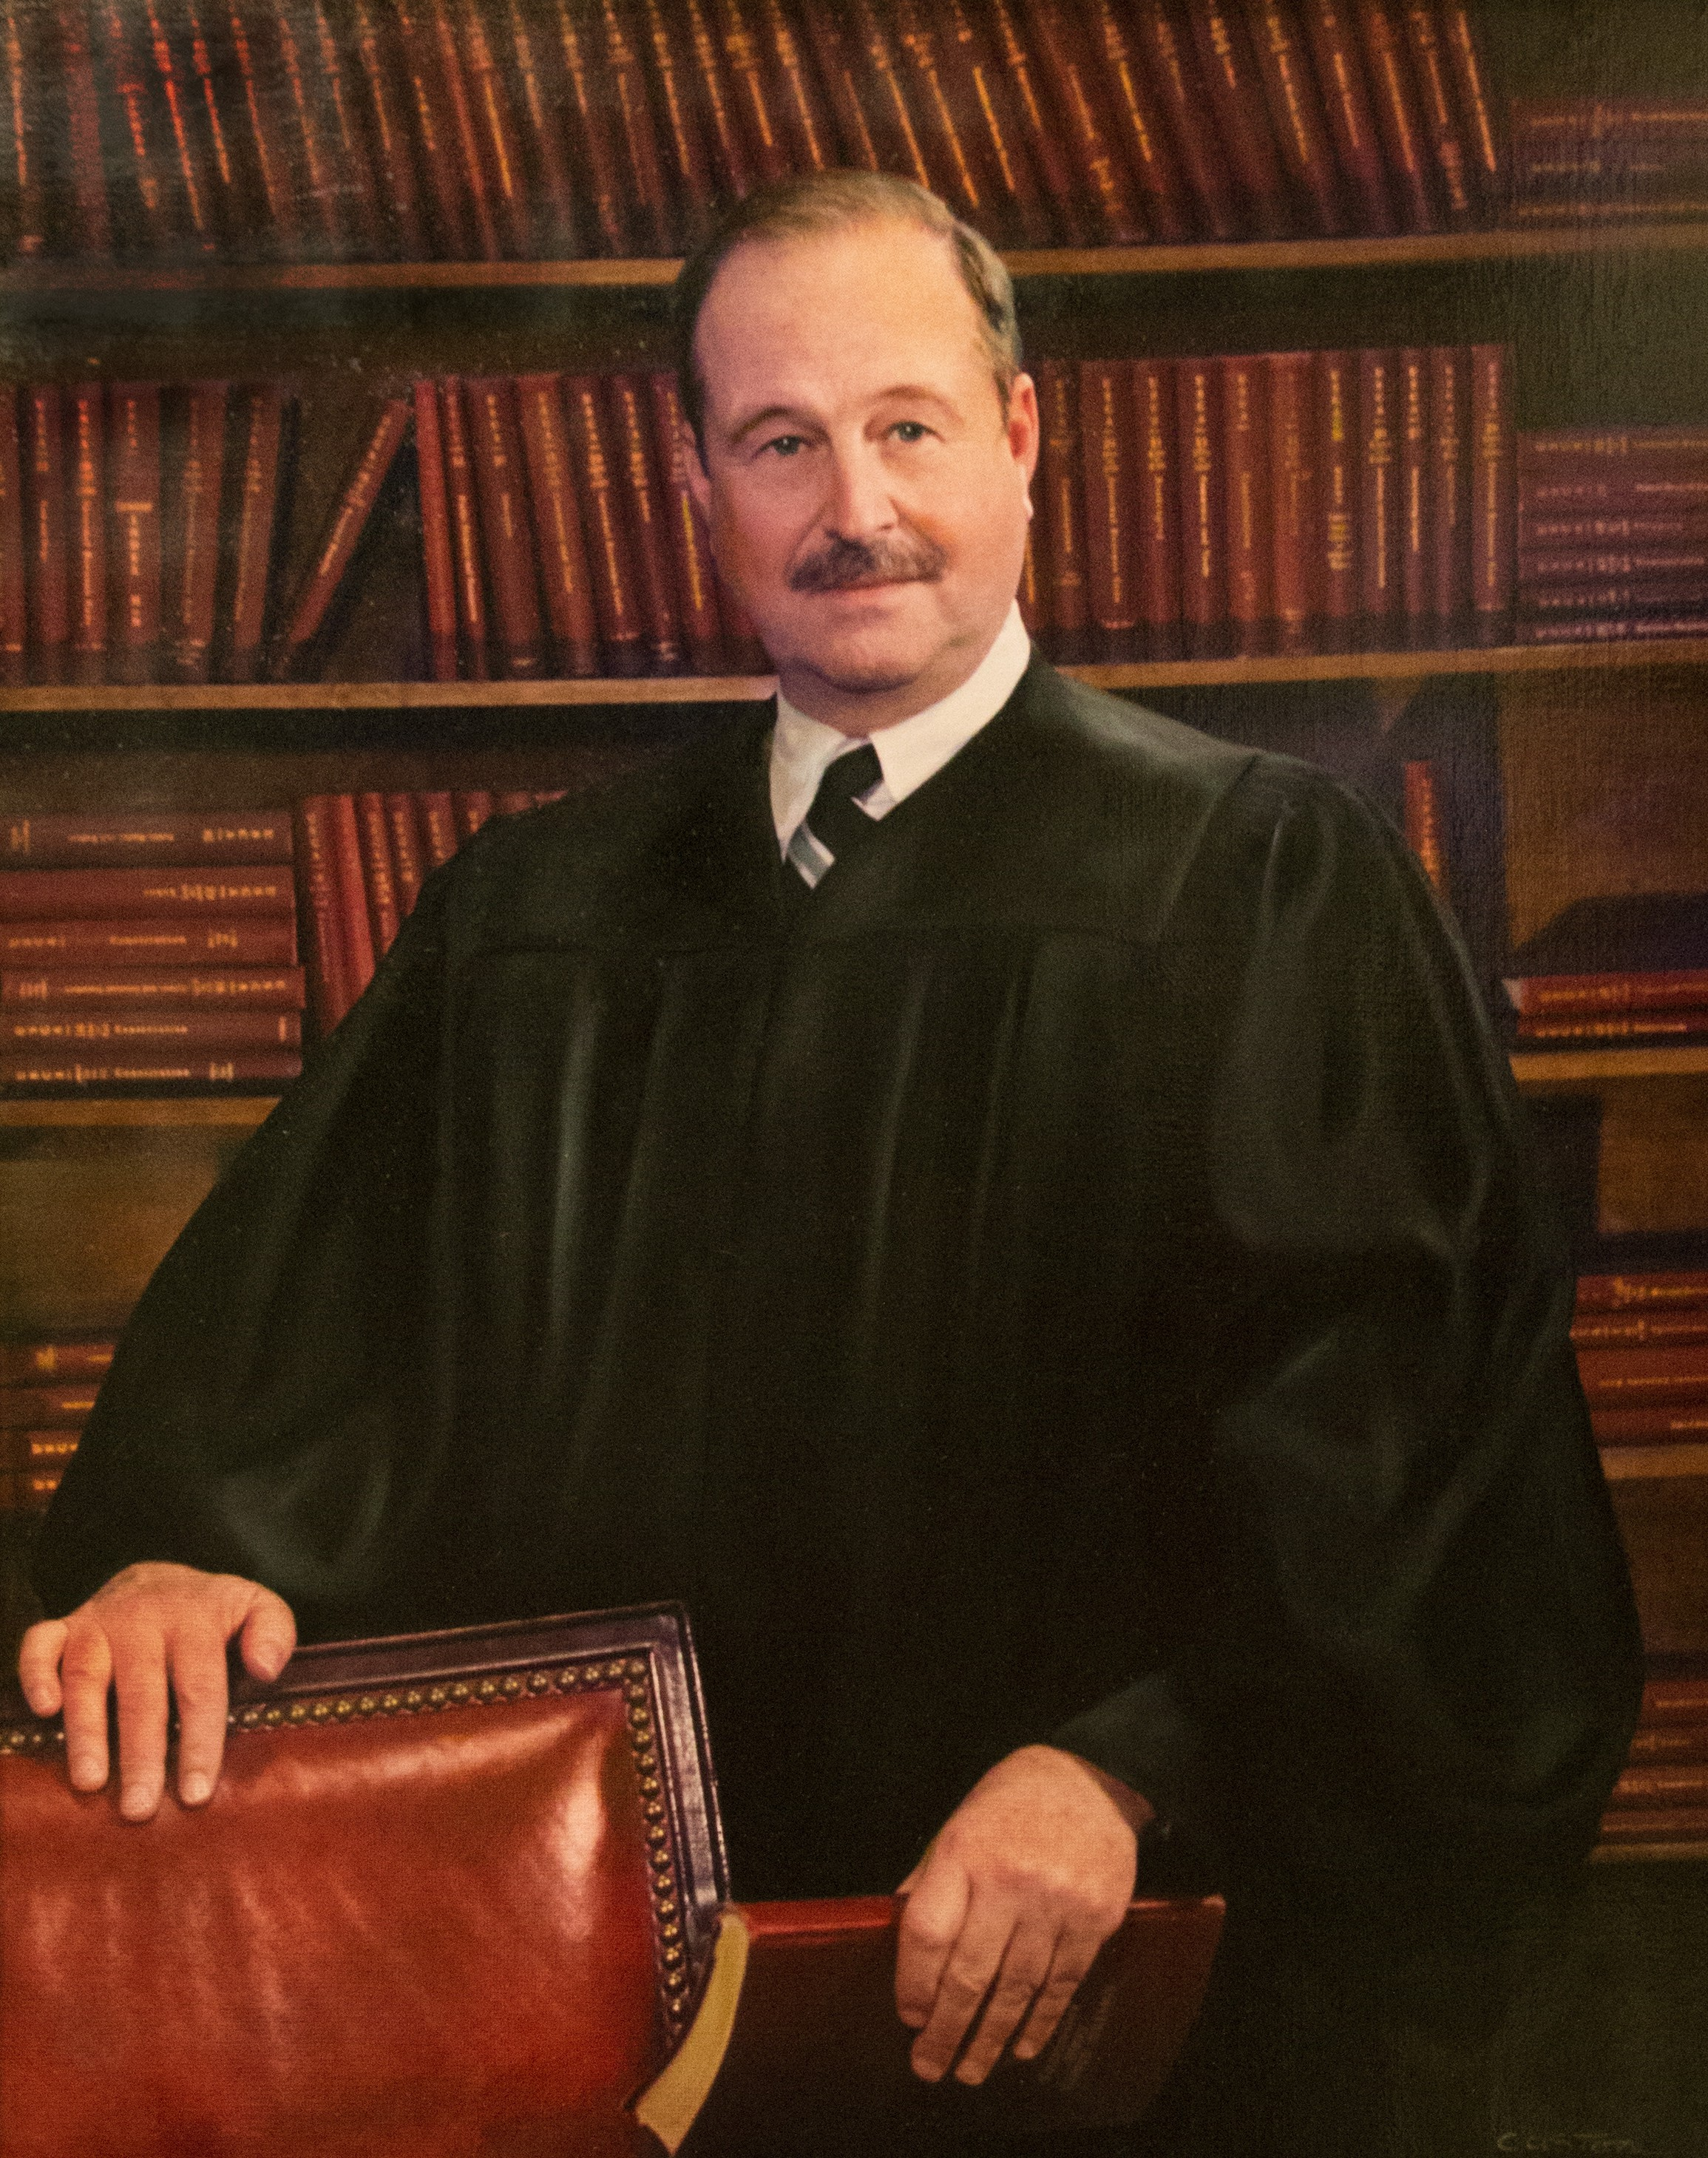 Judge Jere M.H. Willis, Jr.